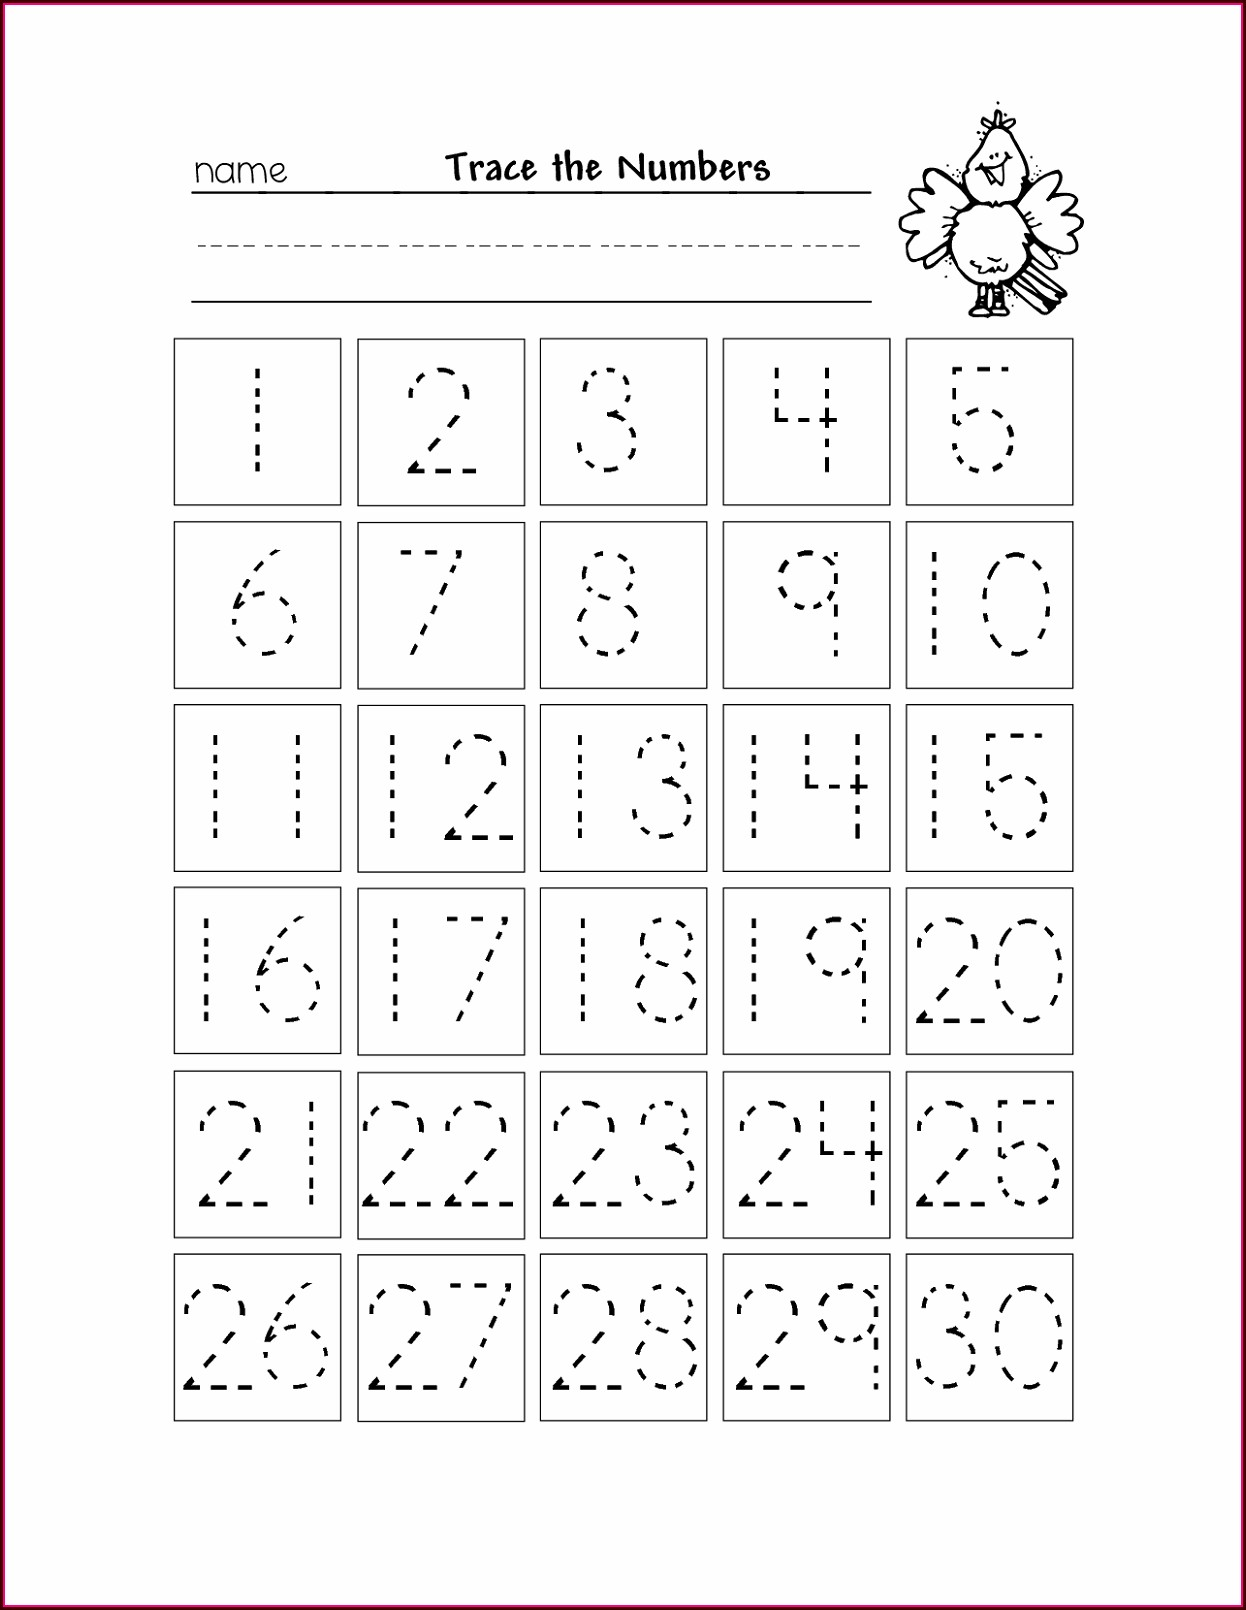 Number Tracing Worksheets 1 50 Pdf